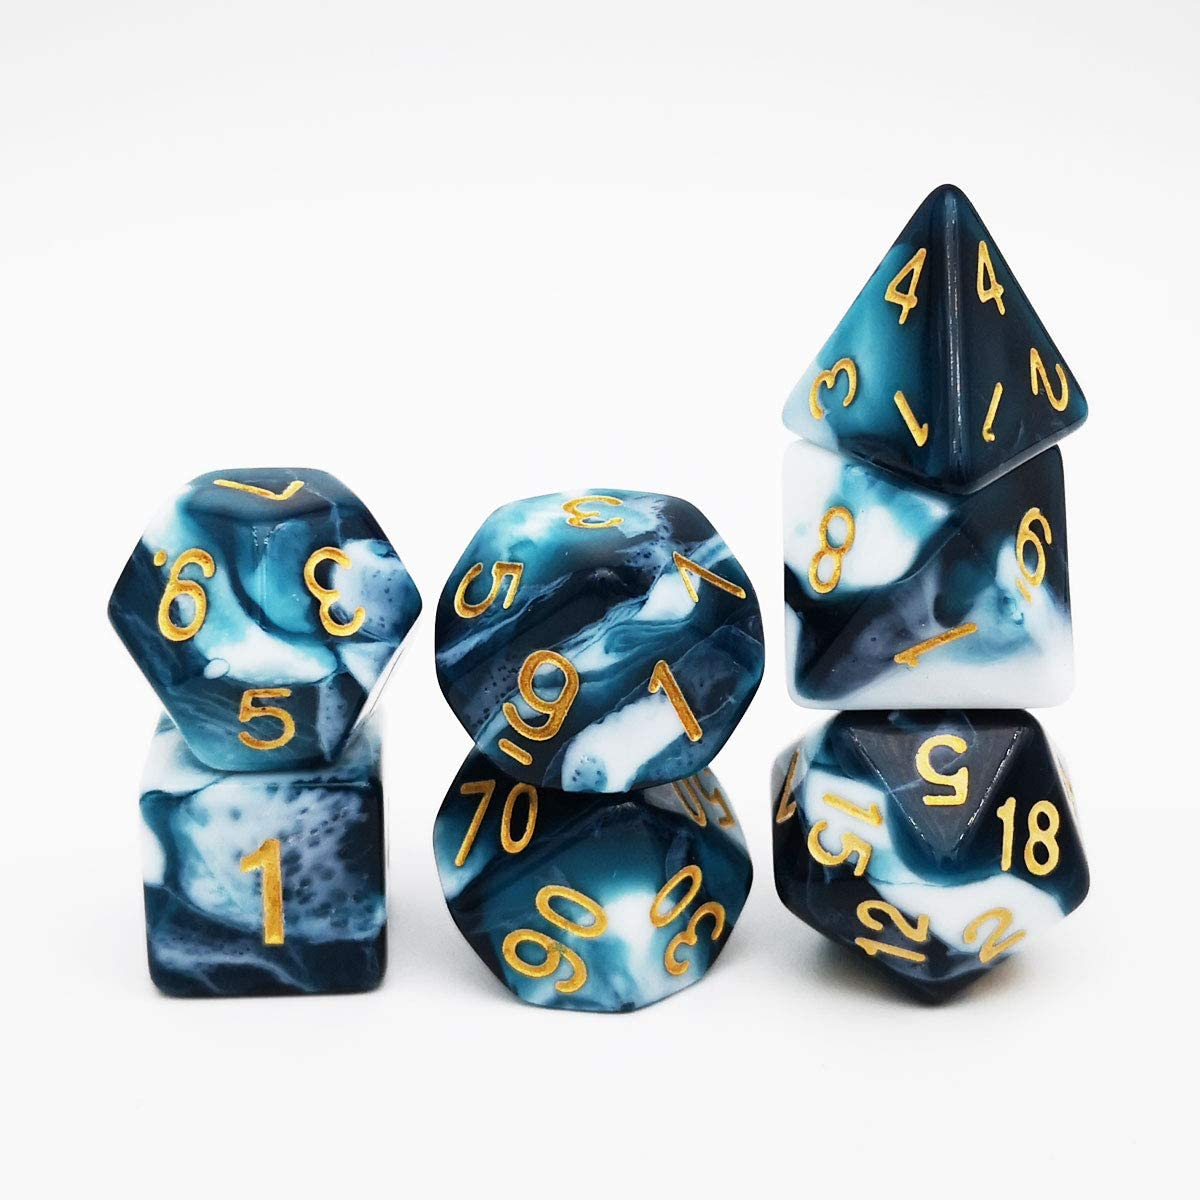 Haxtec Nebula Glitter DND Dice Galaxy Polyhedral D/&D Dice for Dungeons and Dragons Roleplaying Games